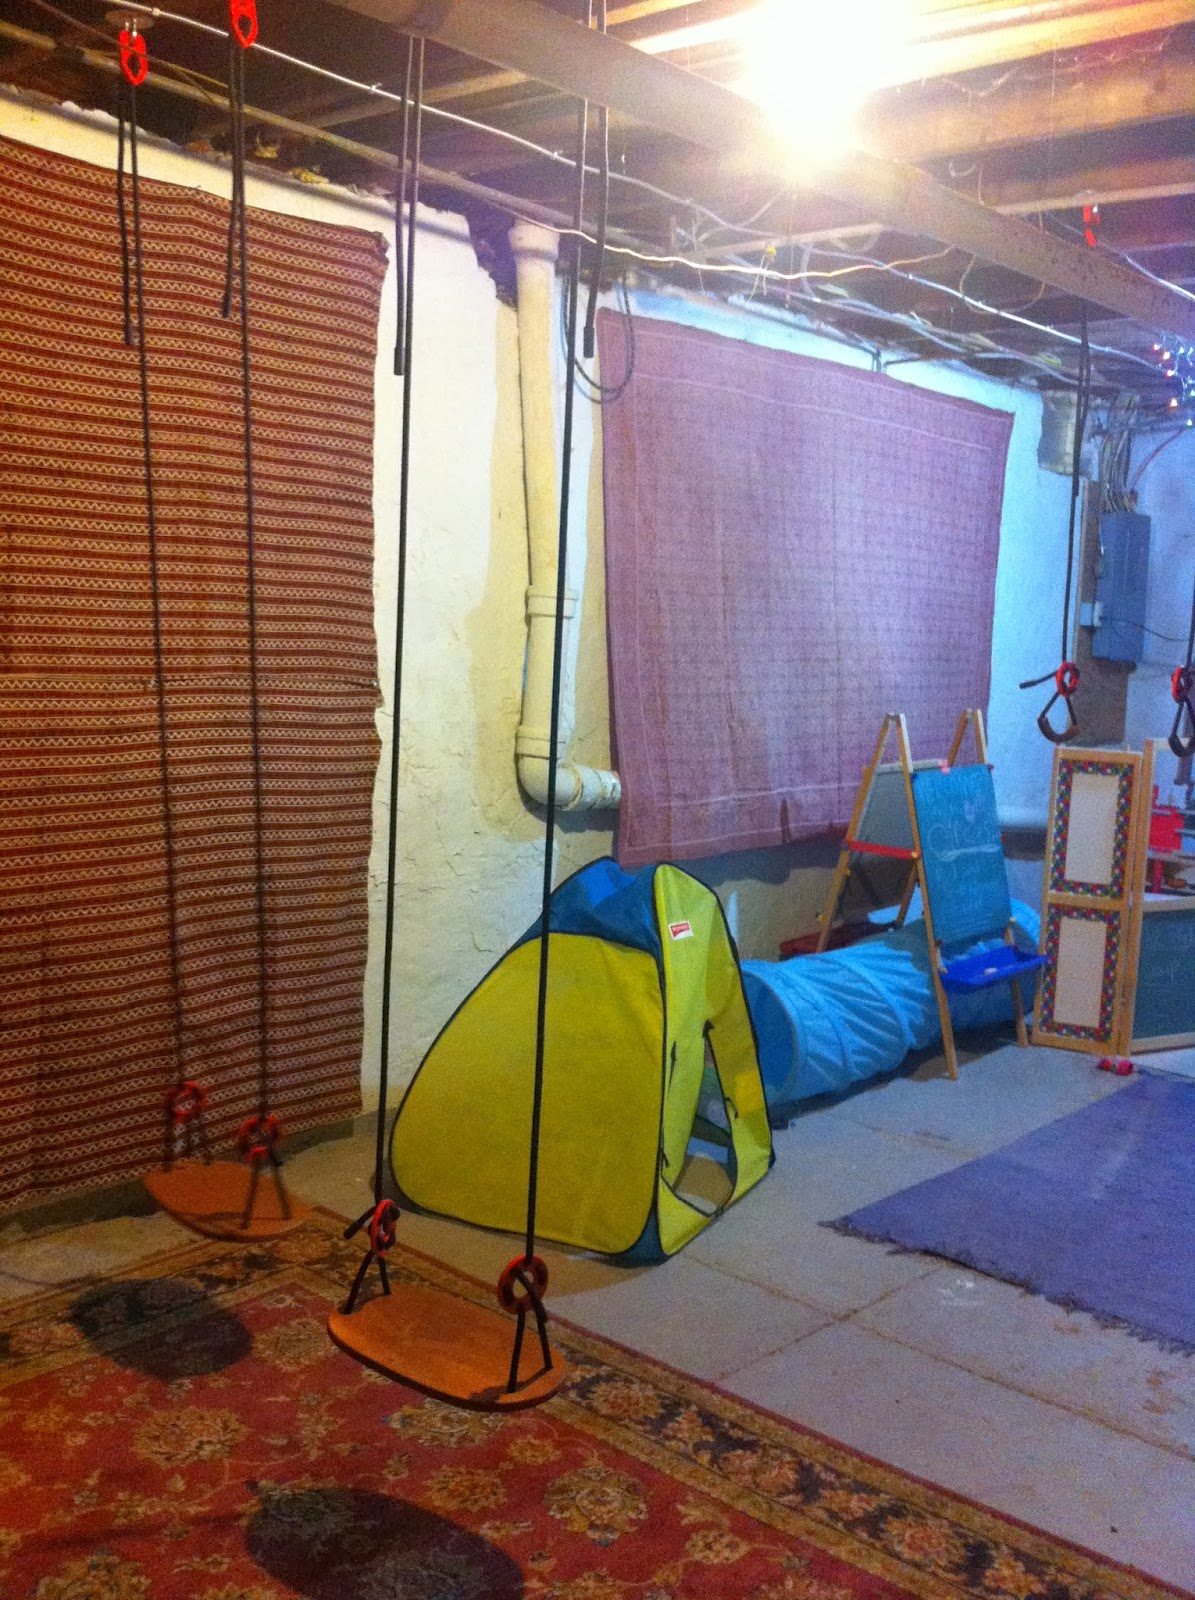 out some space in our very unfinished basement for a play area